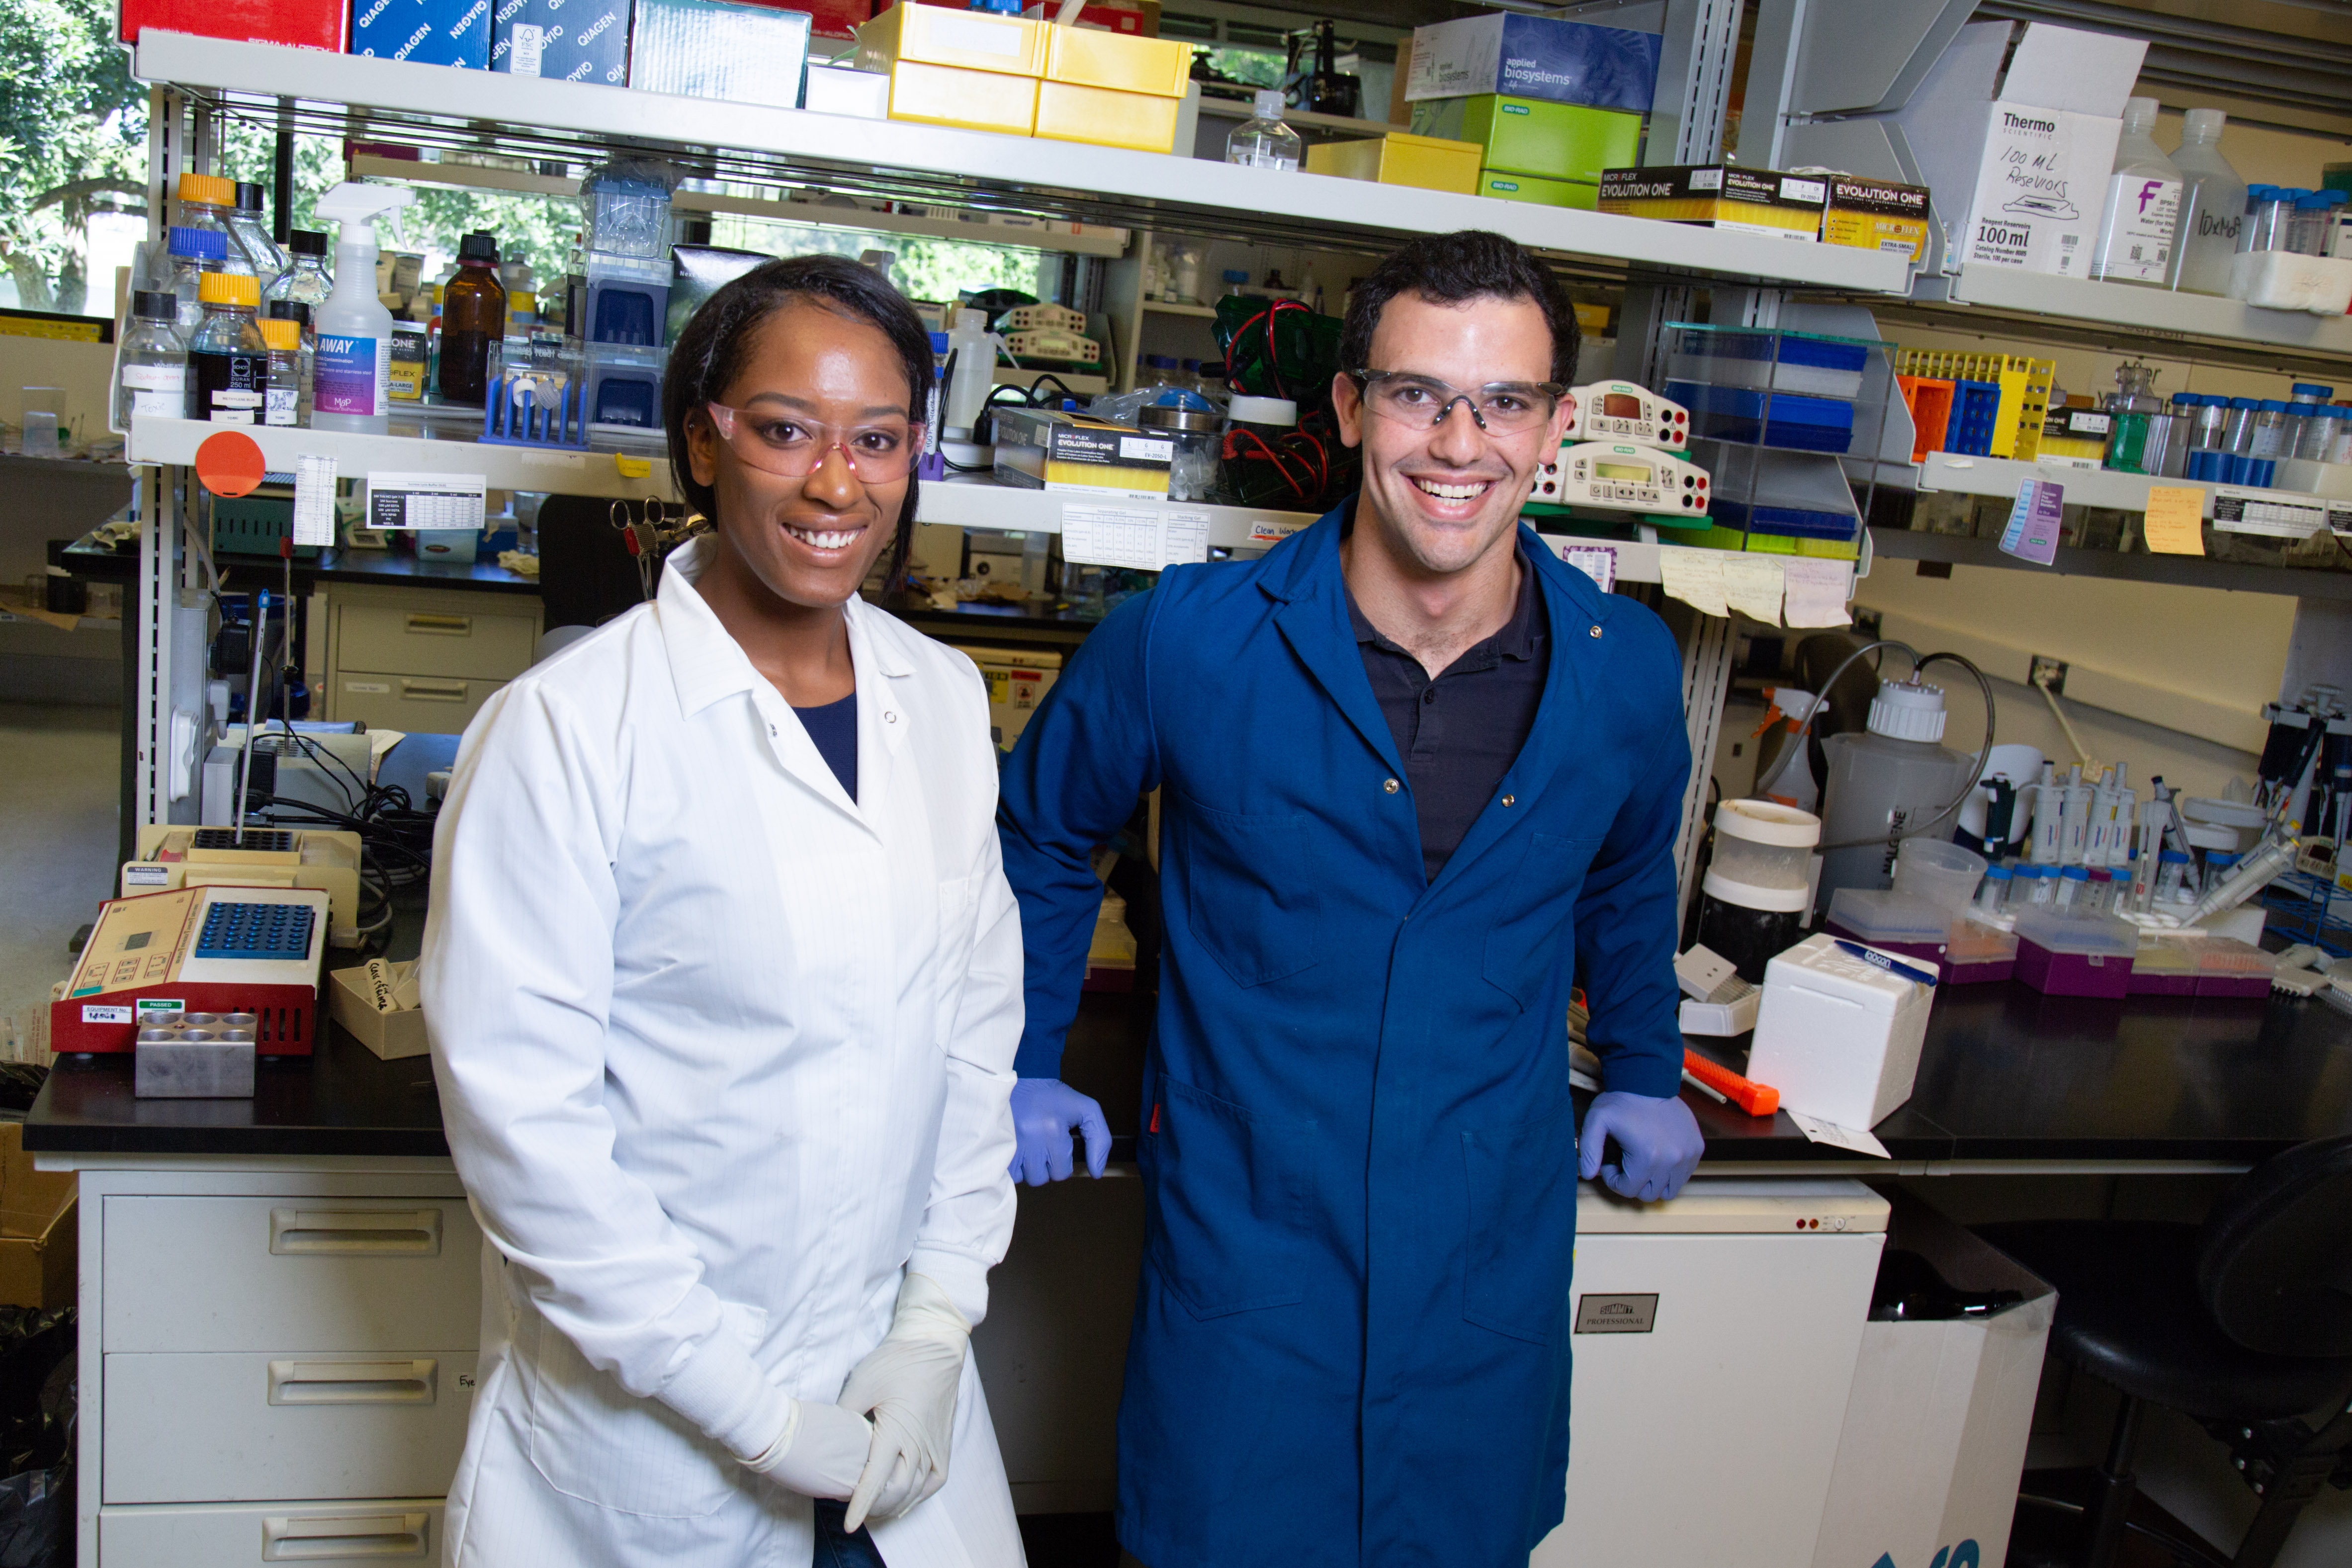 Tayler Smith and Leib Lipowsky stand in the lab. David Slipher/UC Davis